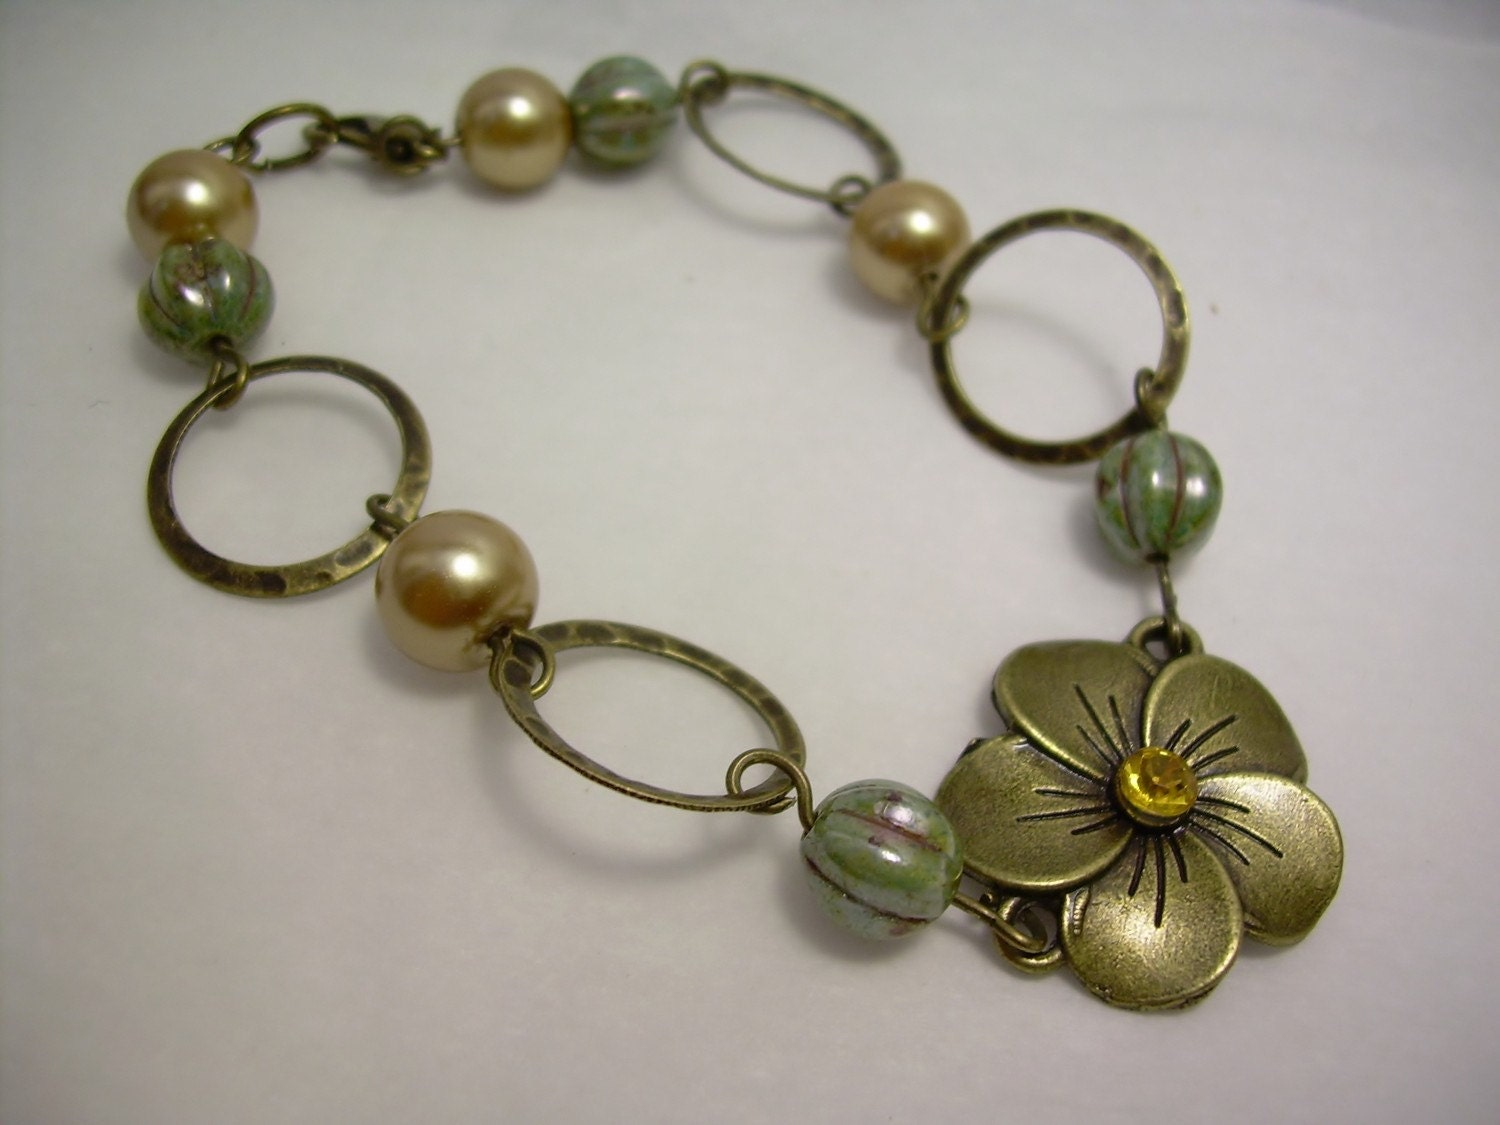 Antiqued Hammered Brass Circle and Flower Bracelet